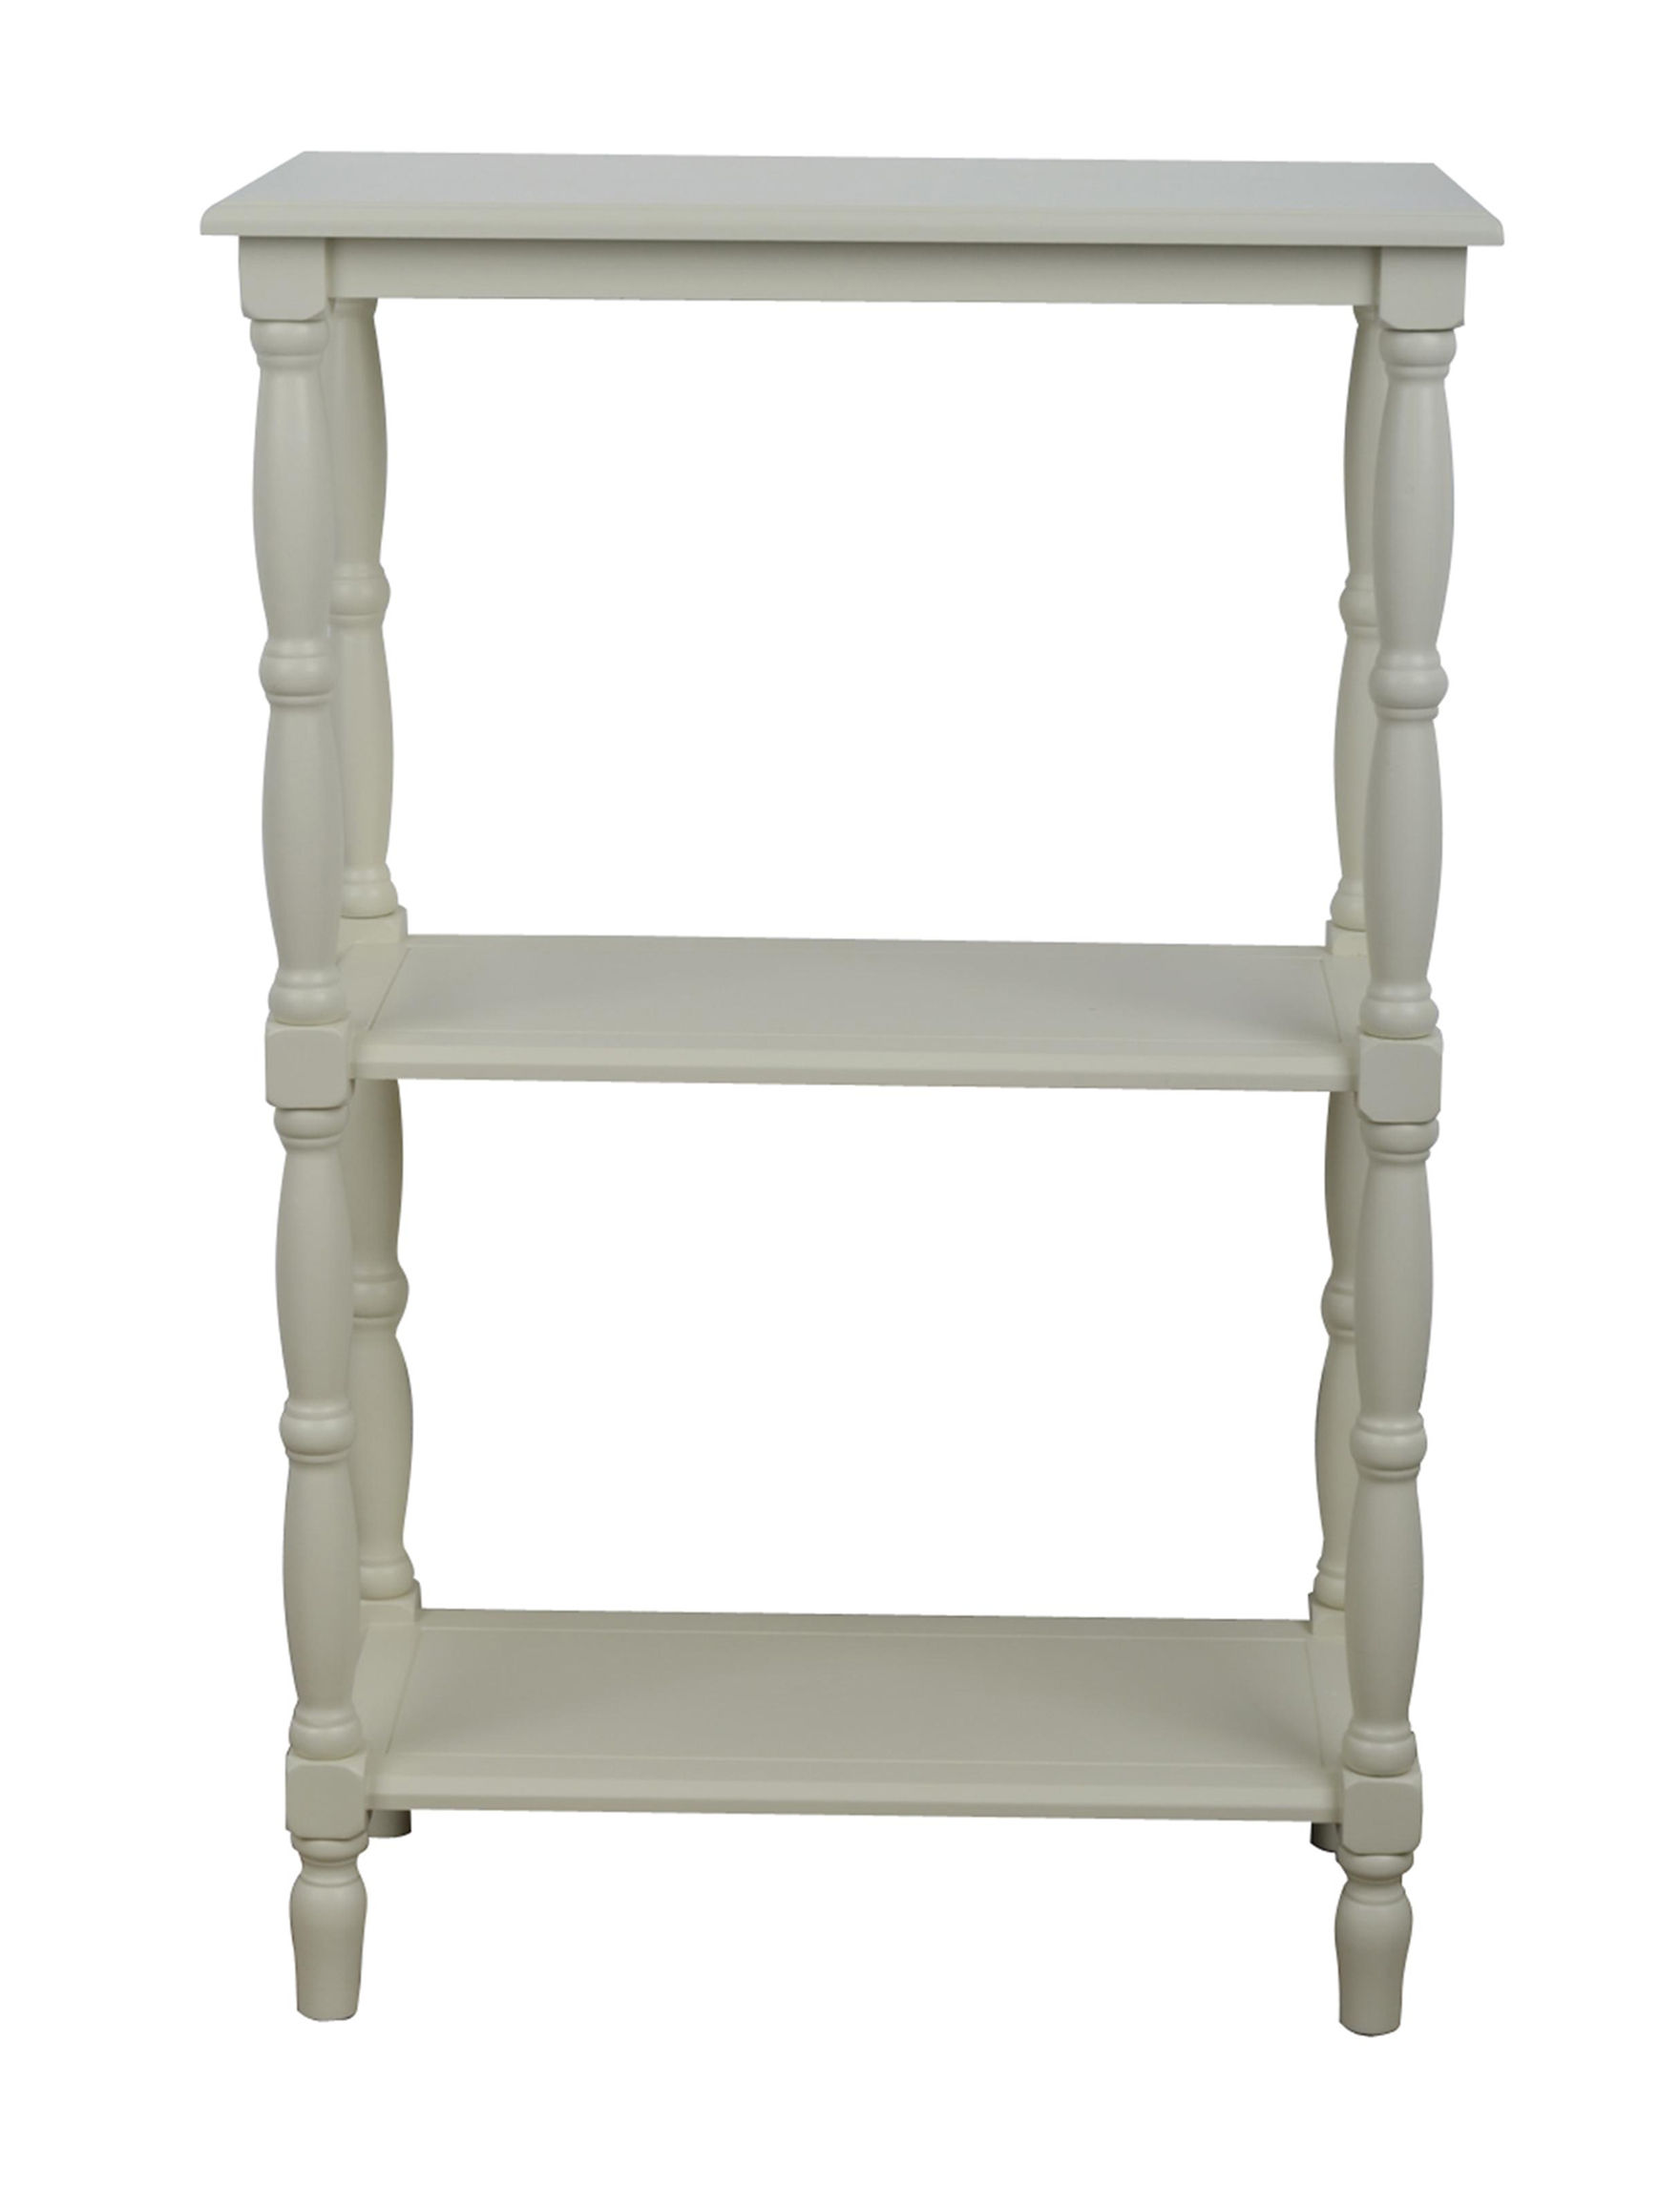 Decor Therapy Antique White Bookcases & Shelves Bedroom Furniture Entryway Furniture Home Office Furniture